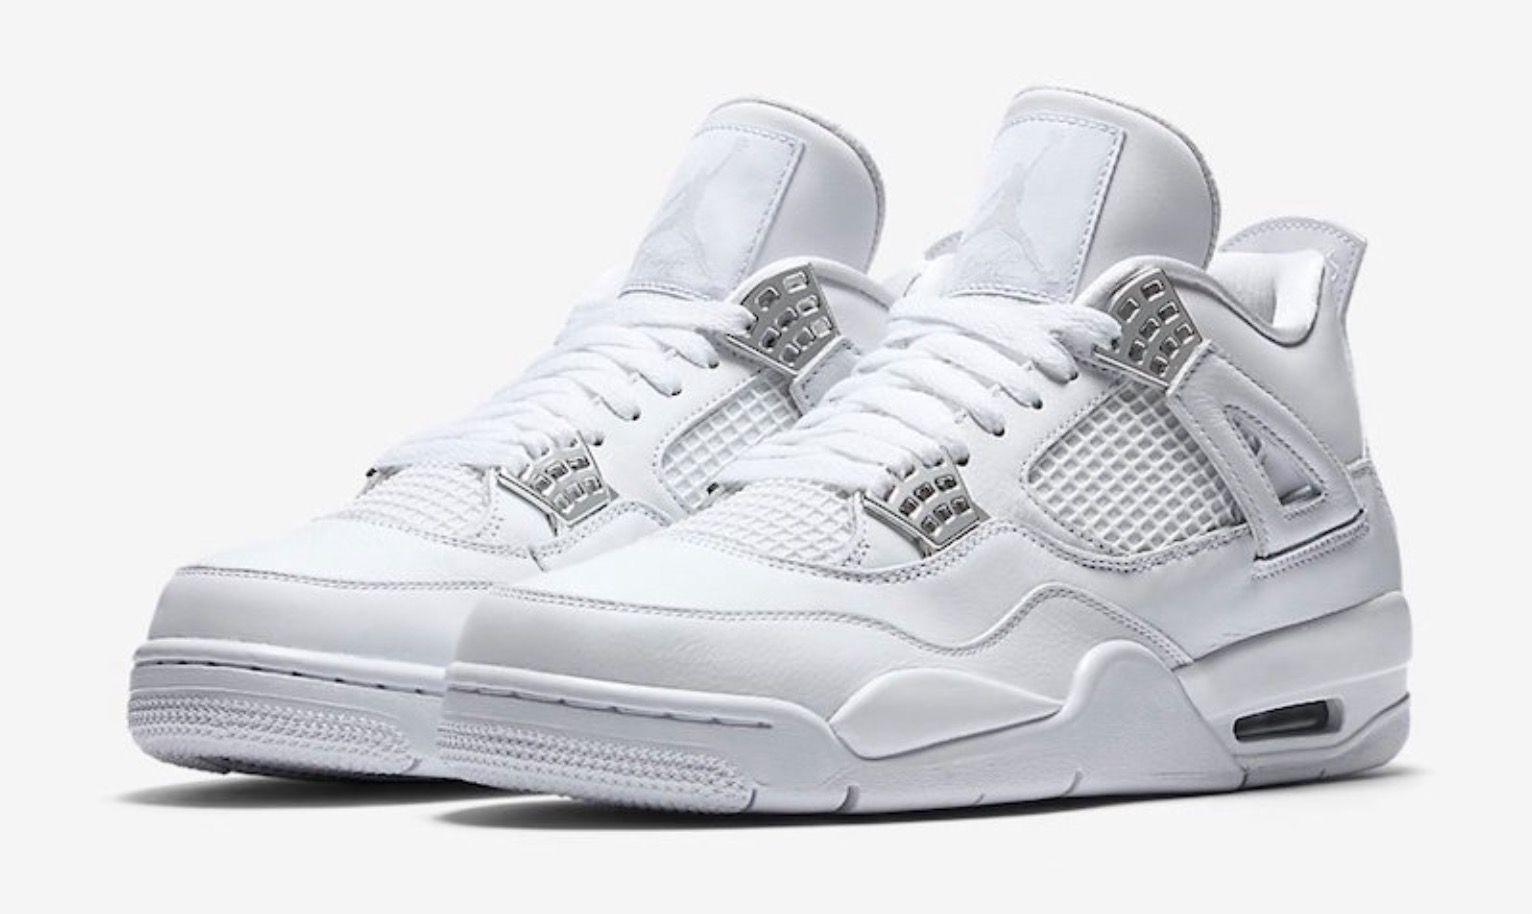 new style affd2 e3c6b Pure Money 4 dropping May 13, 2017. According to Footlocker